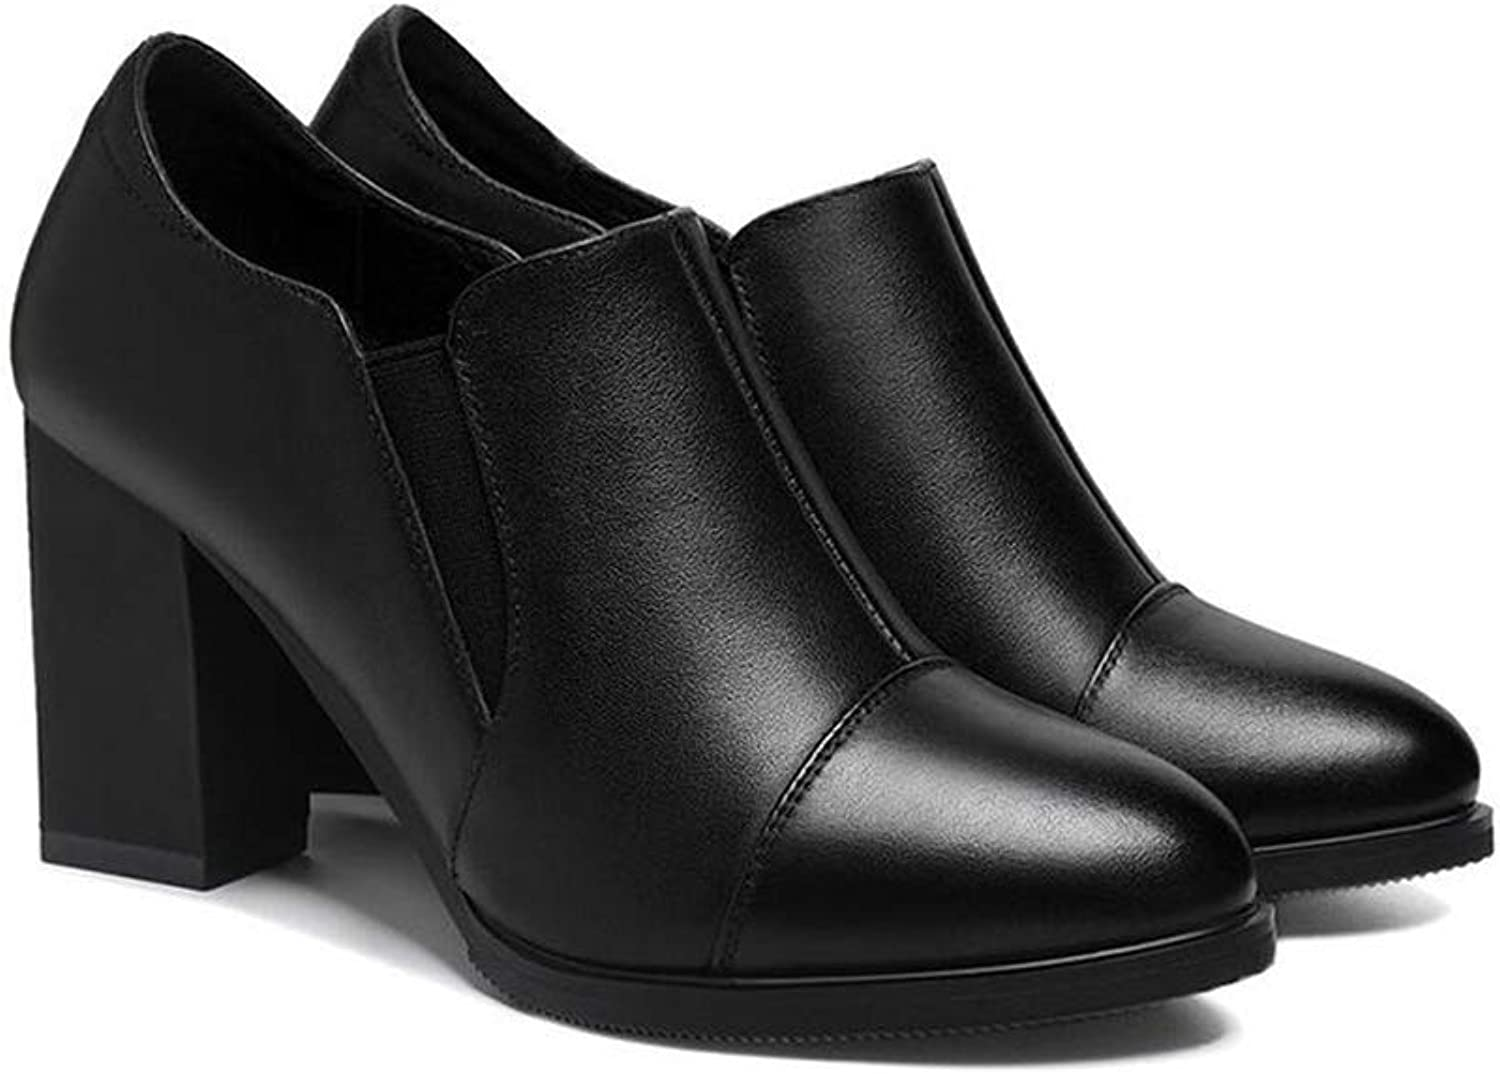 Yiwu Ms Small Leather shoes 2019 Autumn And Winter Female shoes Mid Heel Single shoes Thick Heel Career Jobs High Heels Black (color   Black, Size   EU39 UK6.5 CN40)